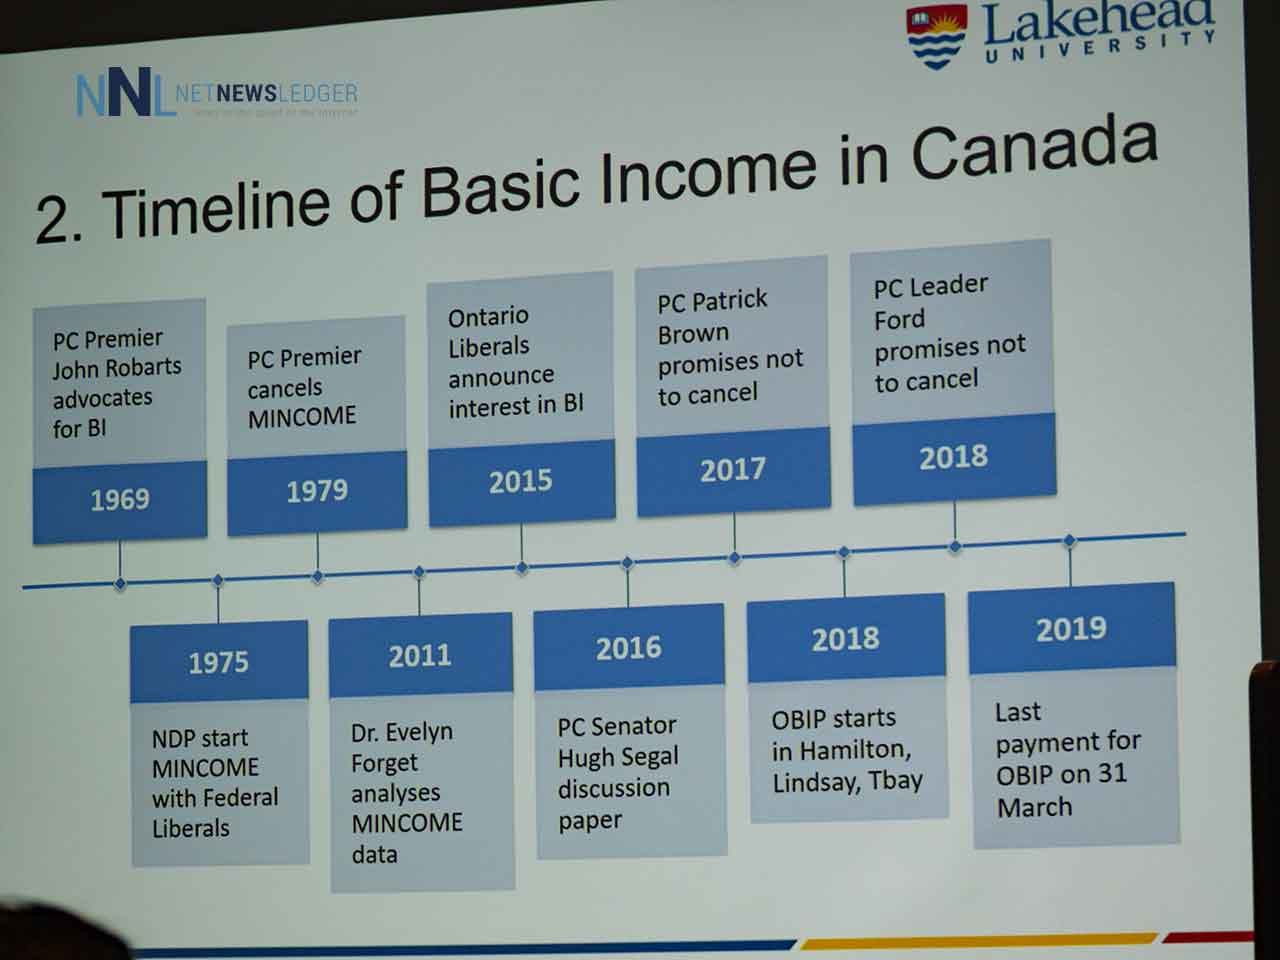 Timeline of Basic Income